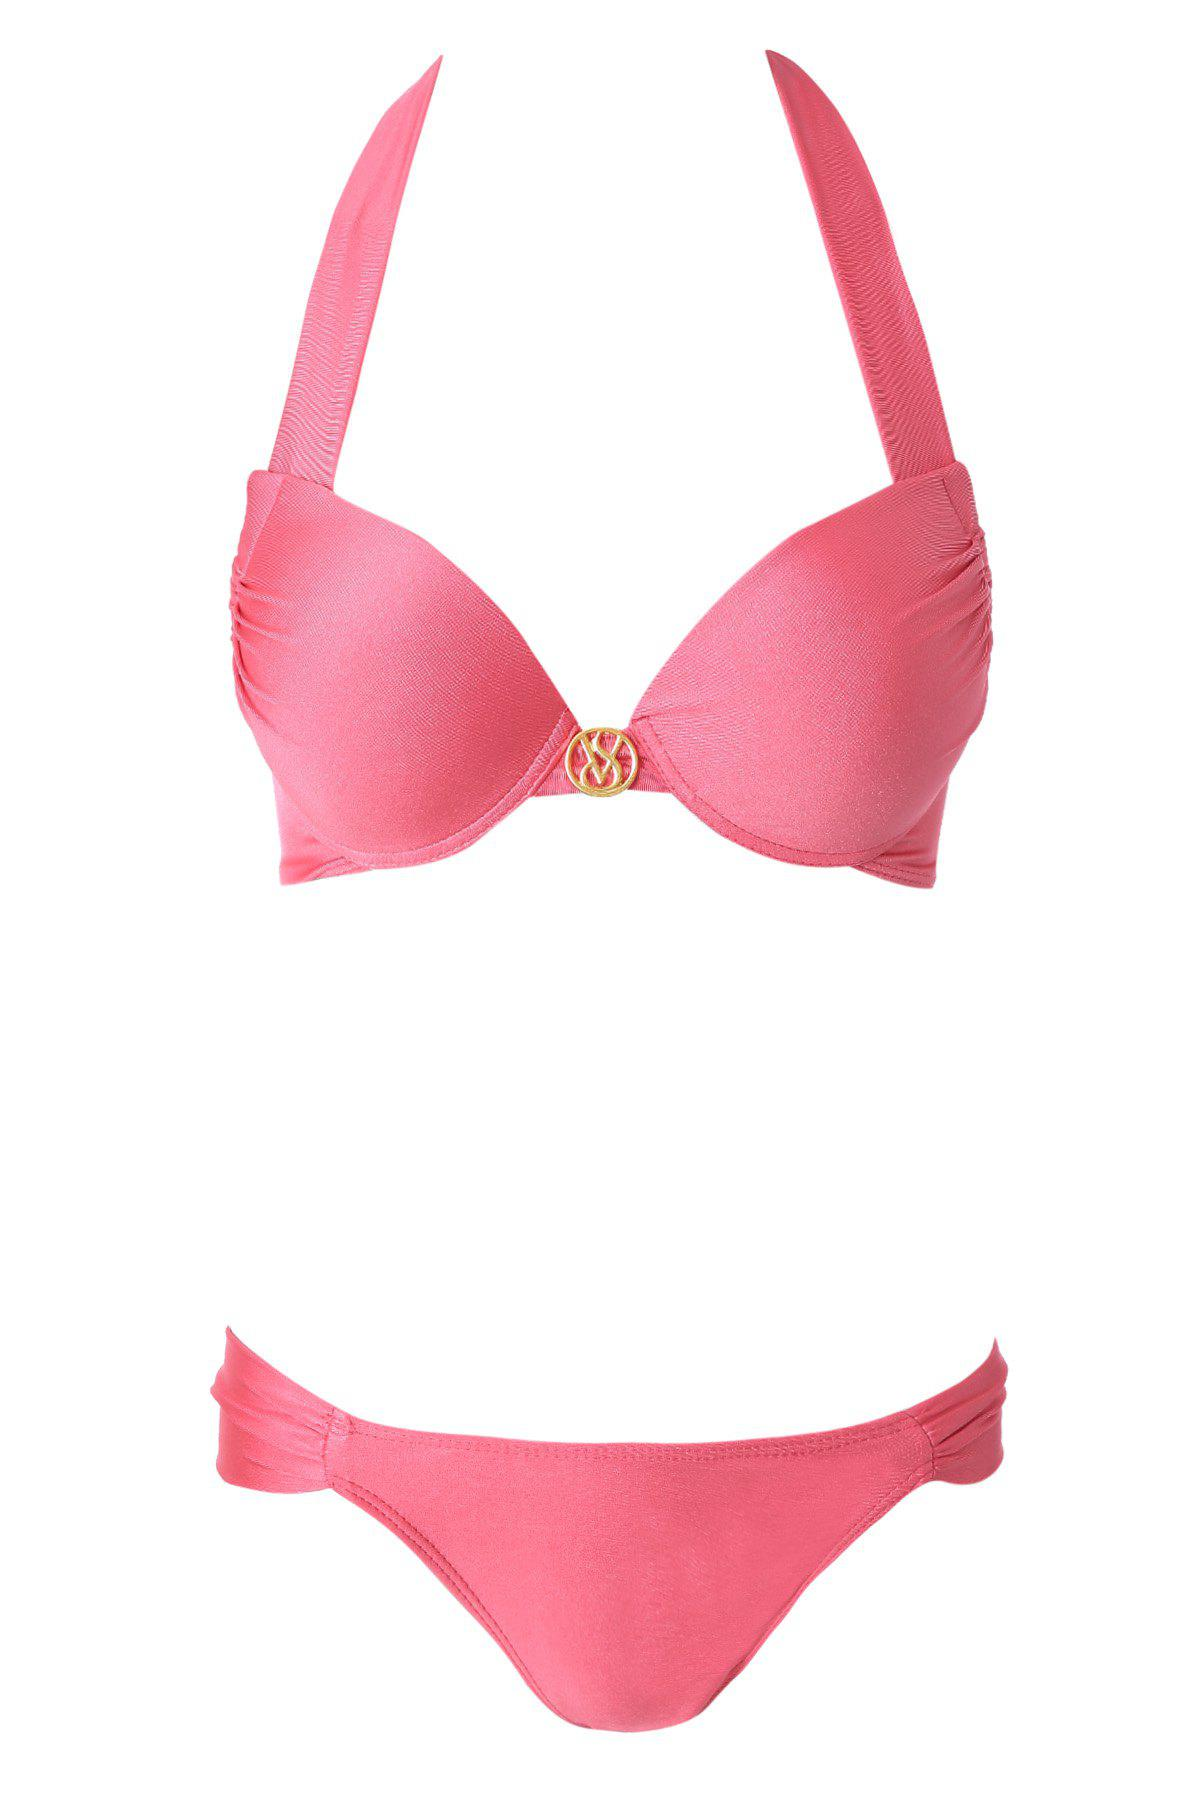 Sexy Halterneck Solid Color Push-Up Women's Bikini Set - PINK M